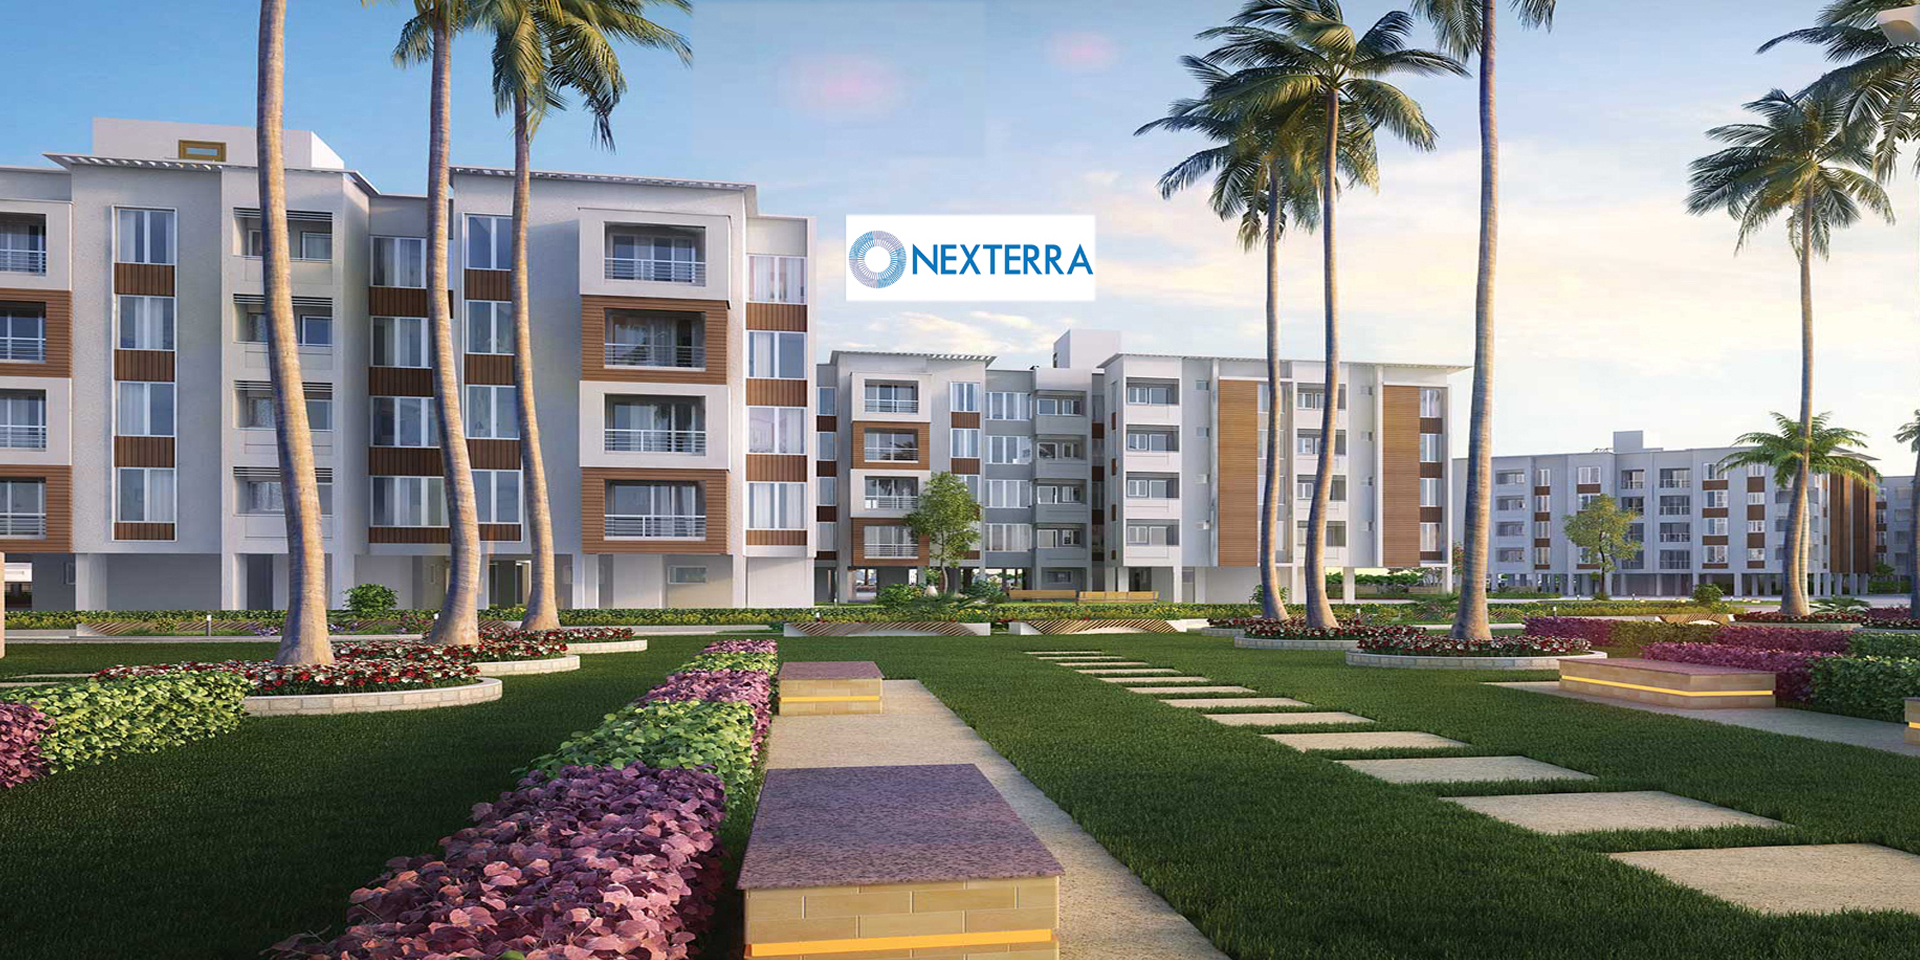 Flats for sale in Nexterra Phase 2 Perumbakkam